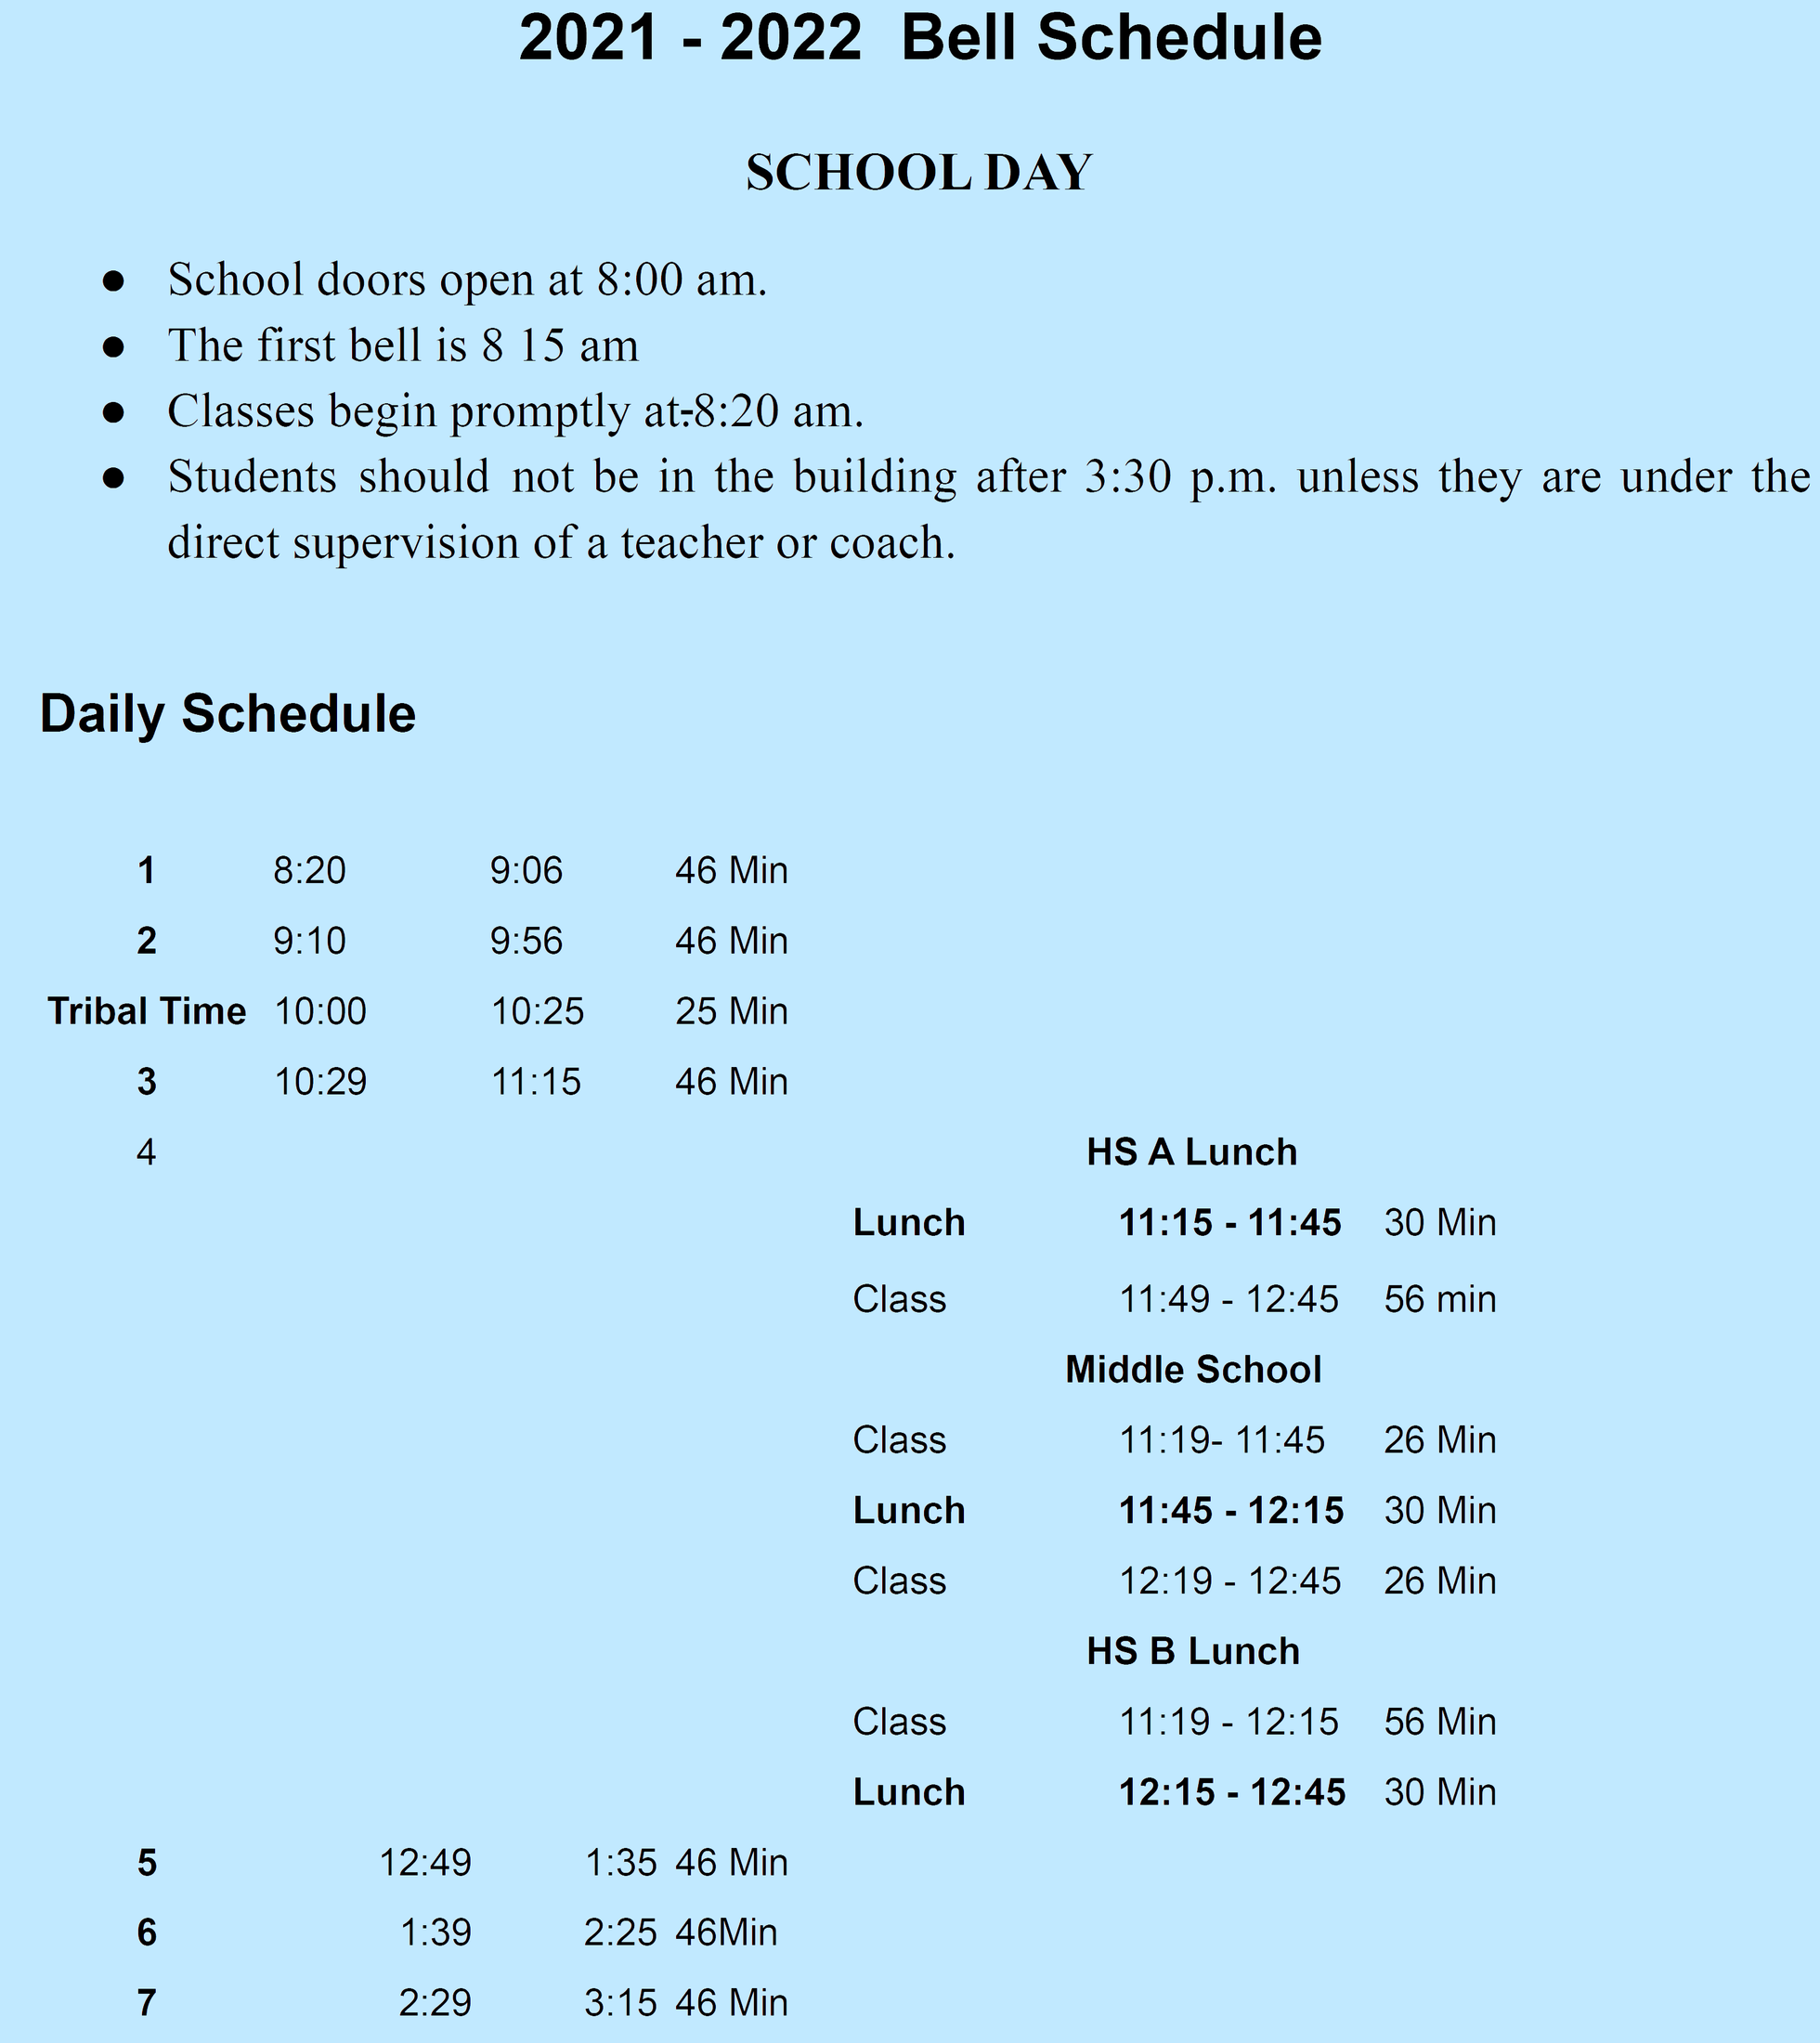 UCJSHS Daily Bell Schedule